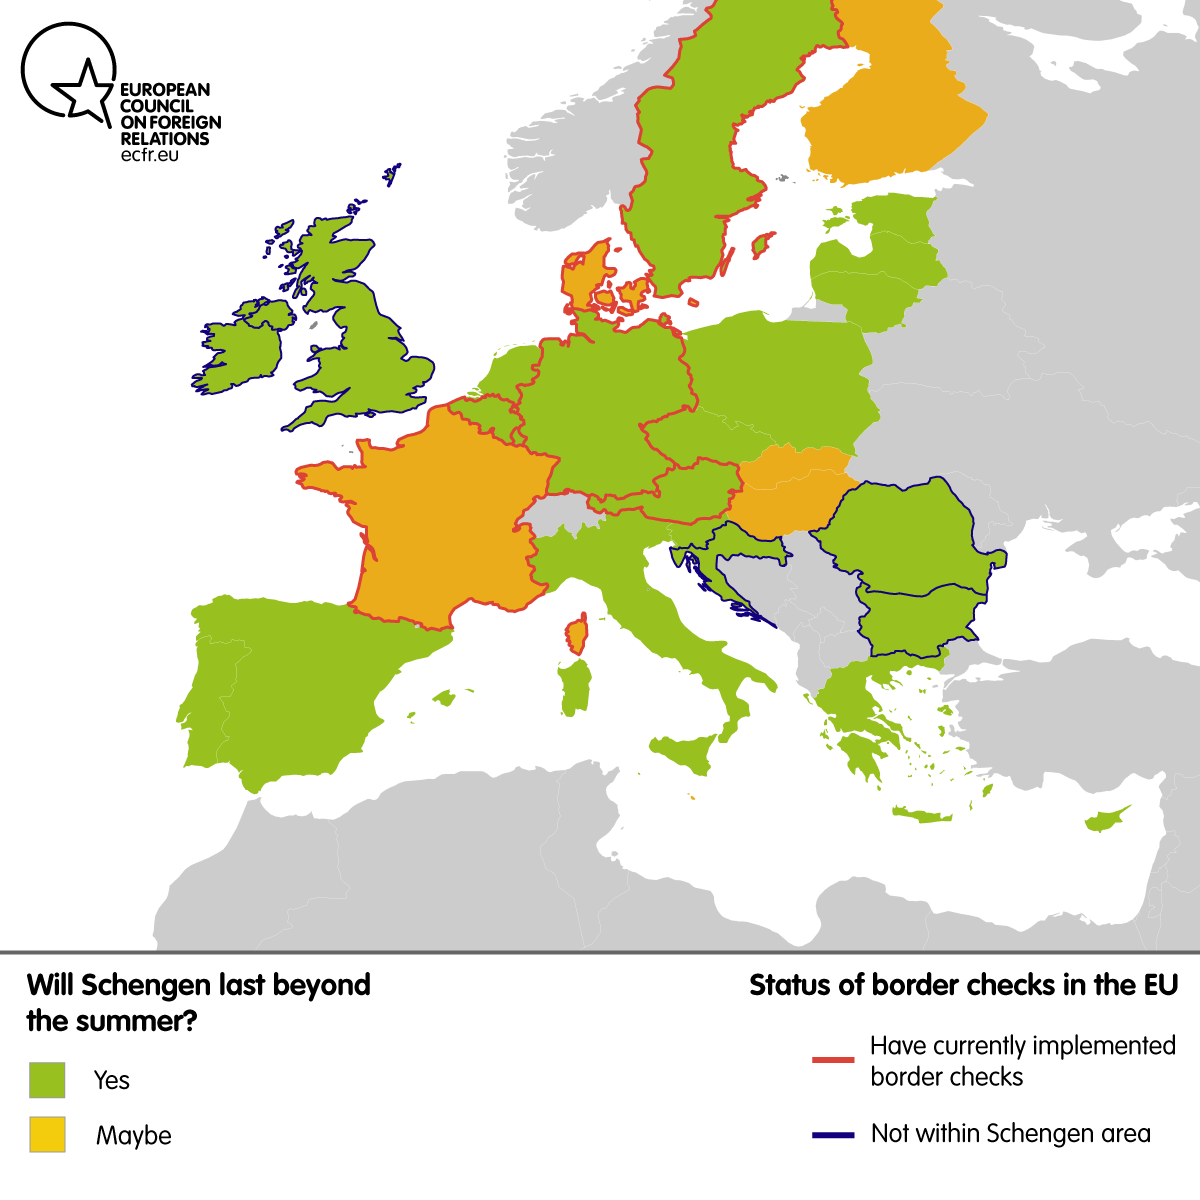 The Future of Schengen  European Council on Foreign Relations